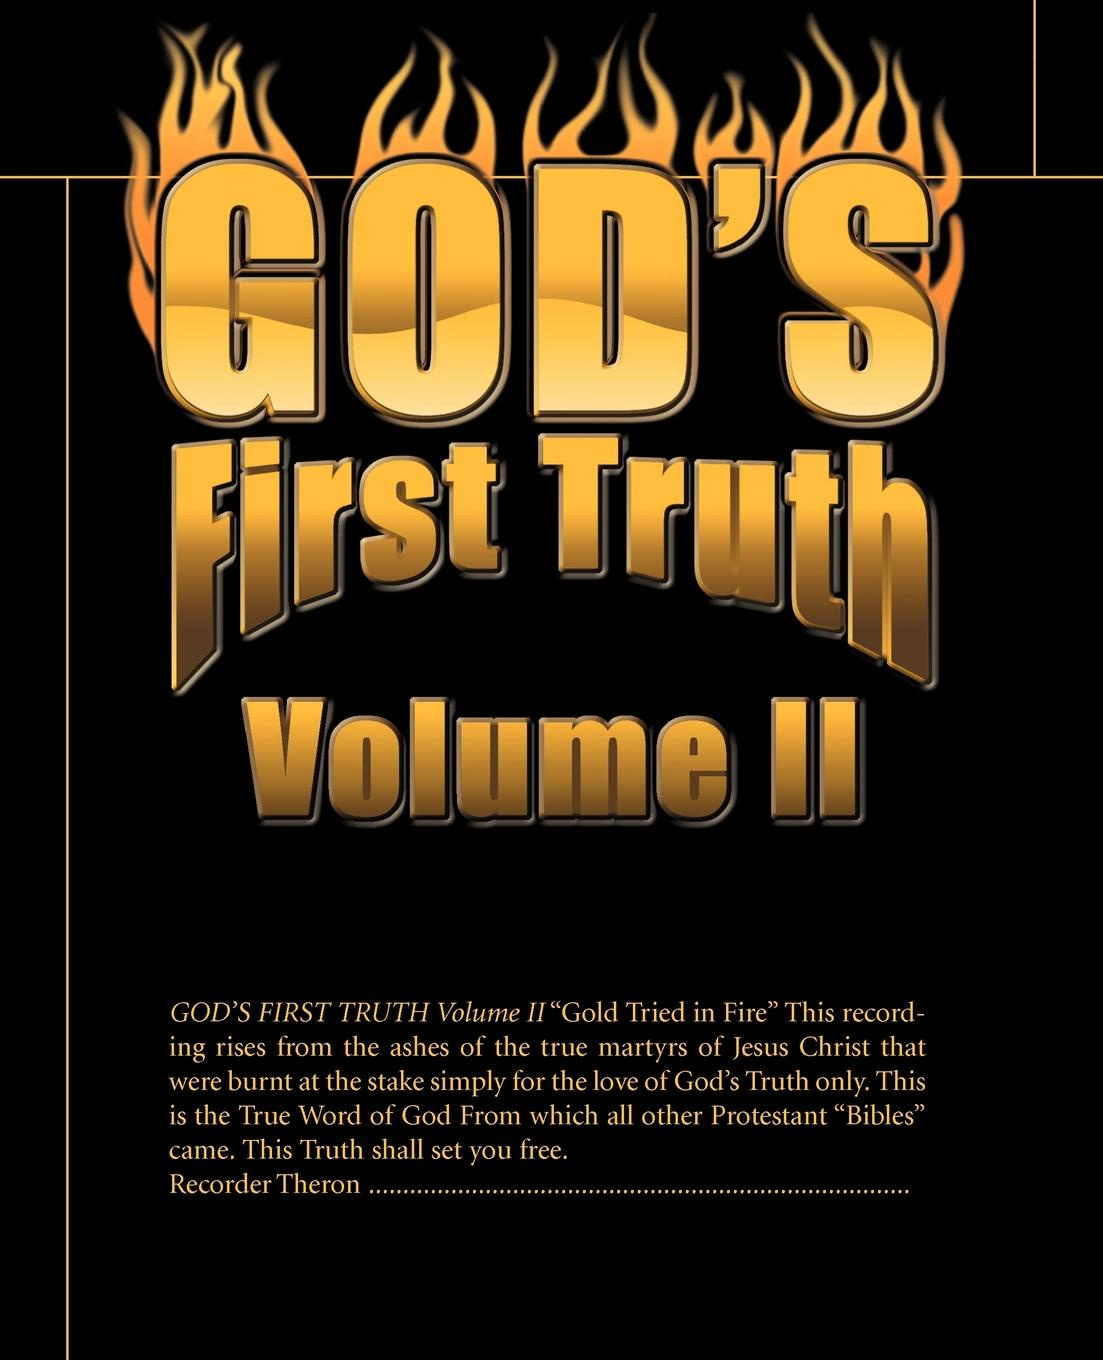 God's First Truth Volume II